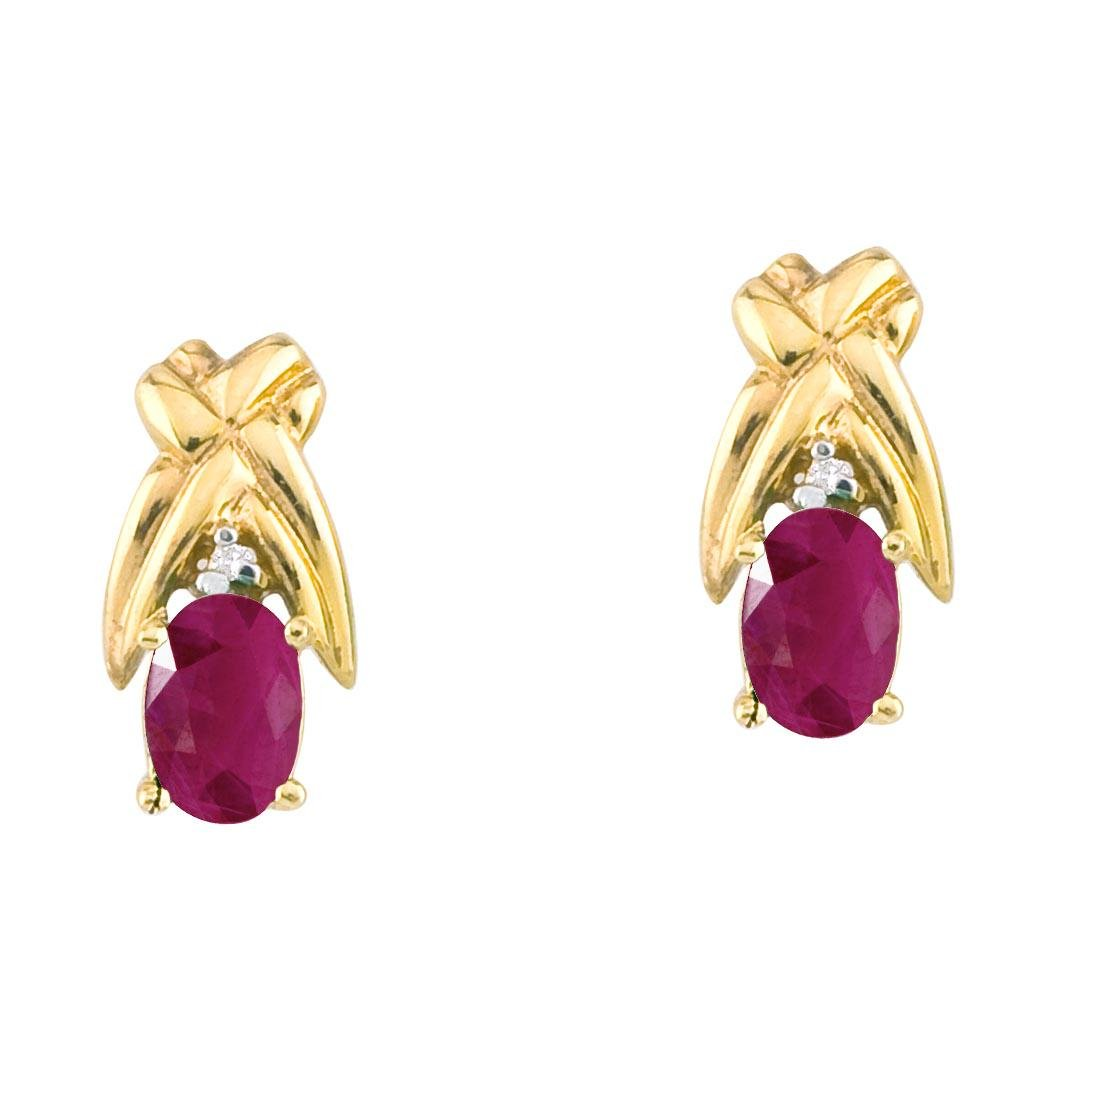 Certified 14k Yellow Gold 6x4mm Oval Ruby and Diamond S